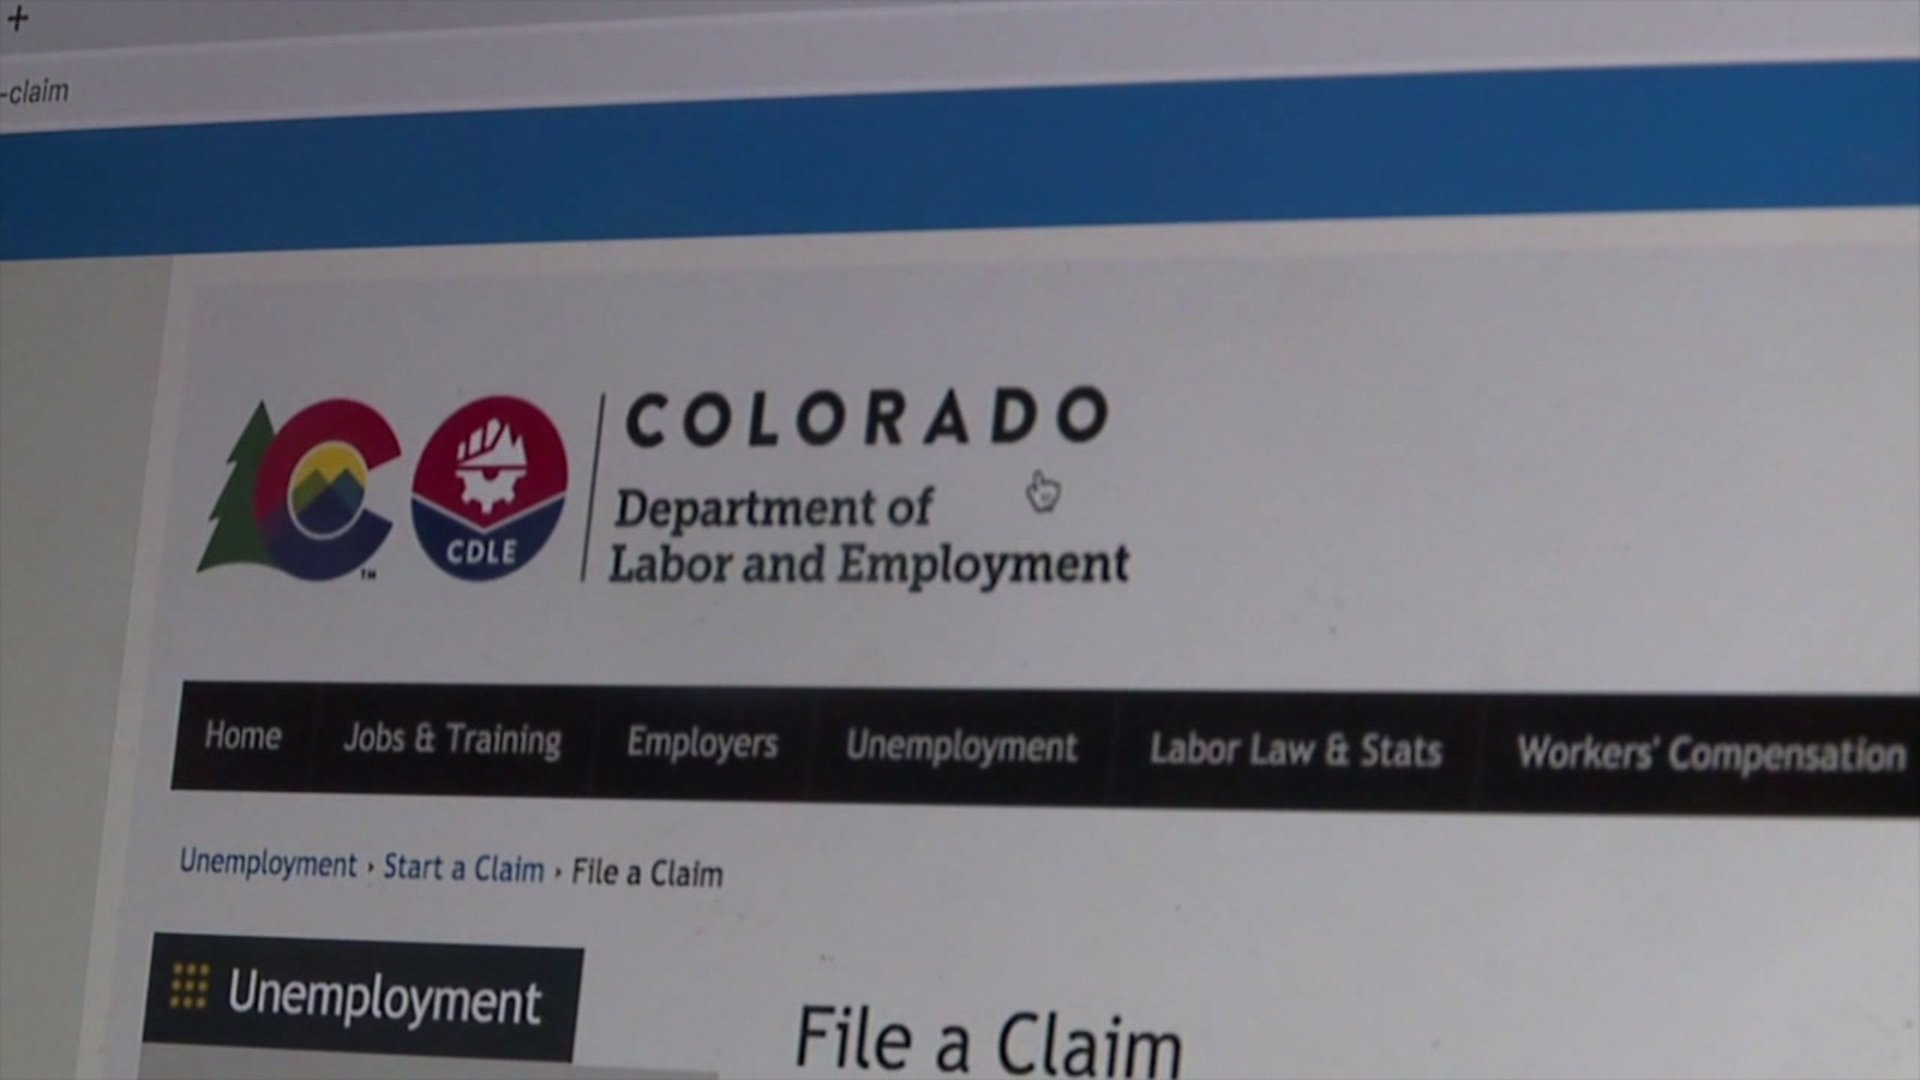 Colorado Department of Labor and Employment website